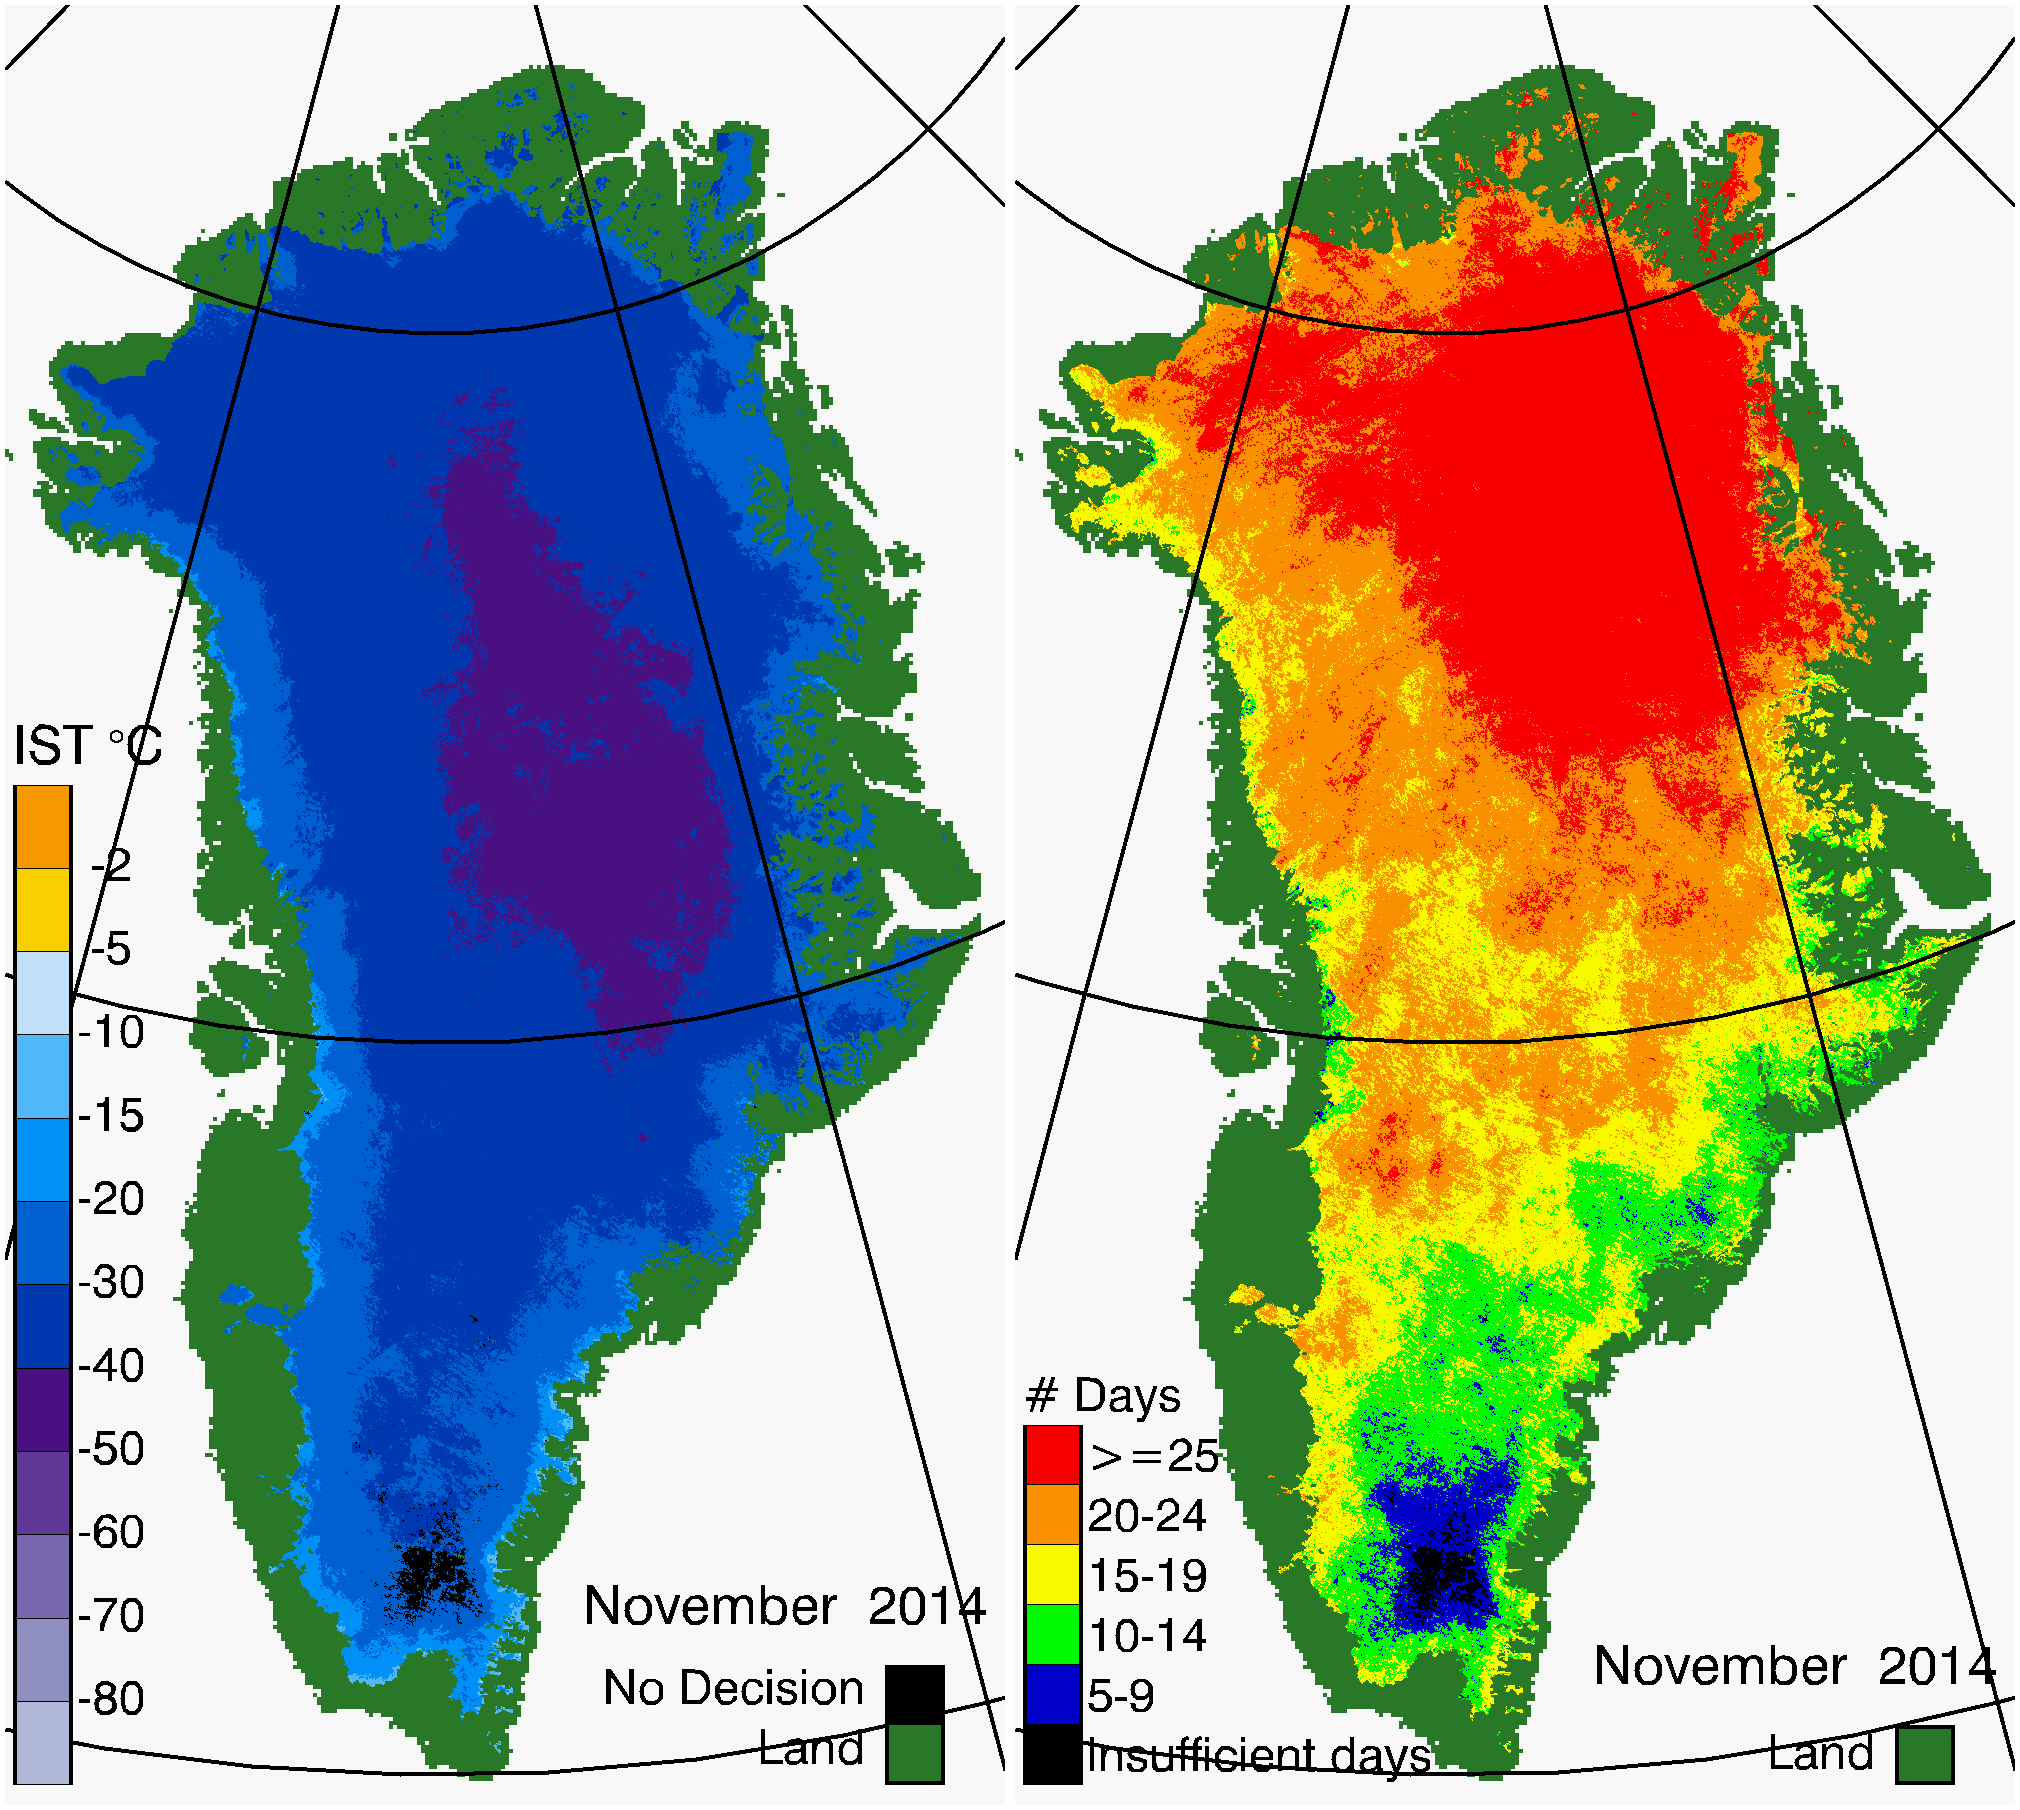 Greenland Surface Temp 11/2014